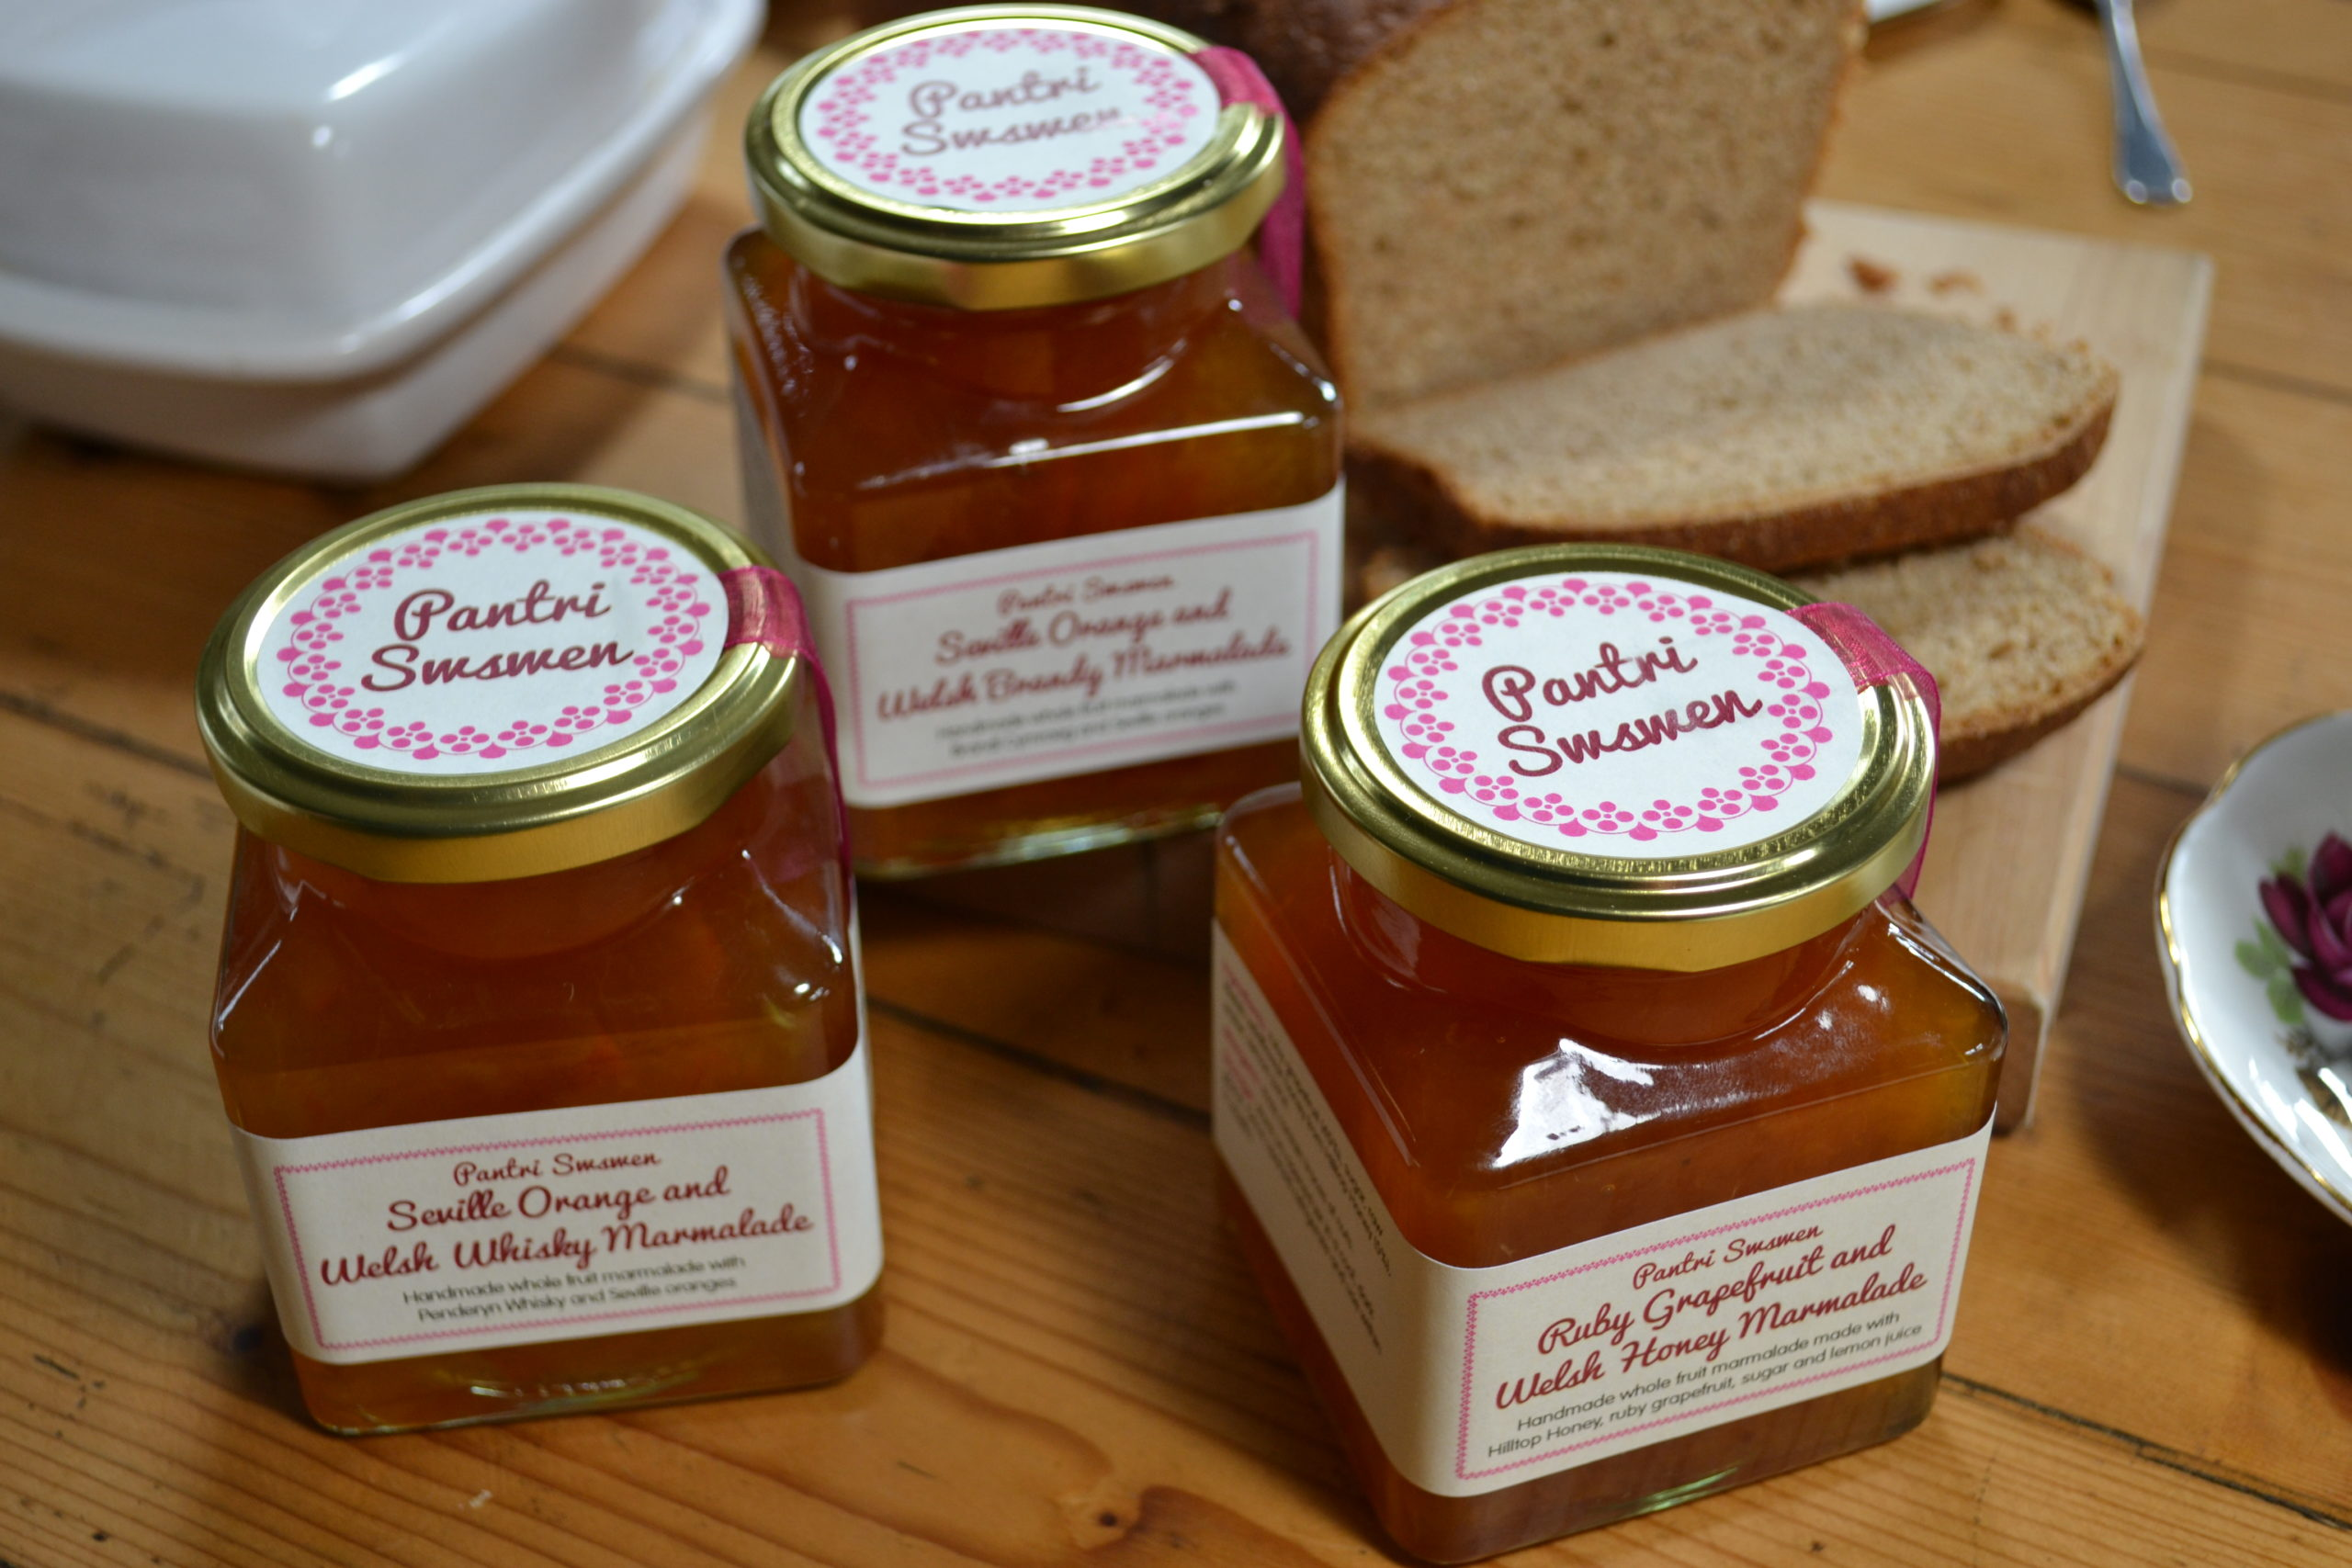 Welsh Whiskey Marmalade